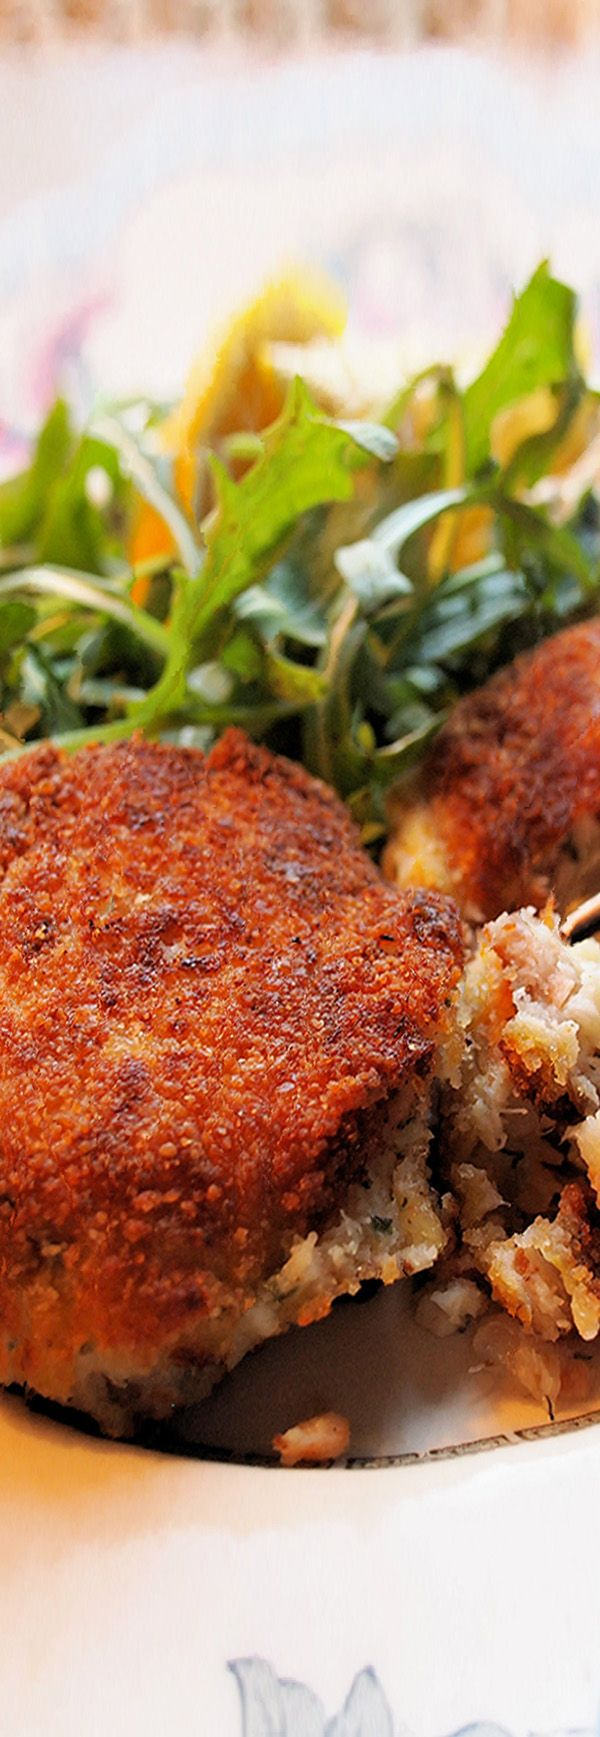 81 best images about ways to eat fish cakes on pinterest for Old fashioned cod fish cakes